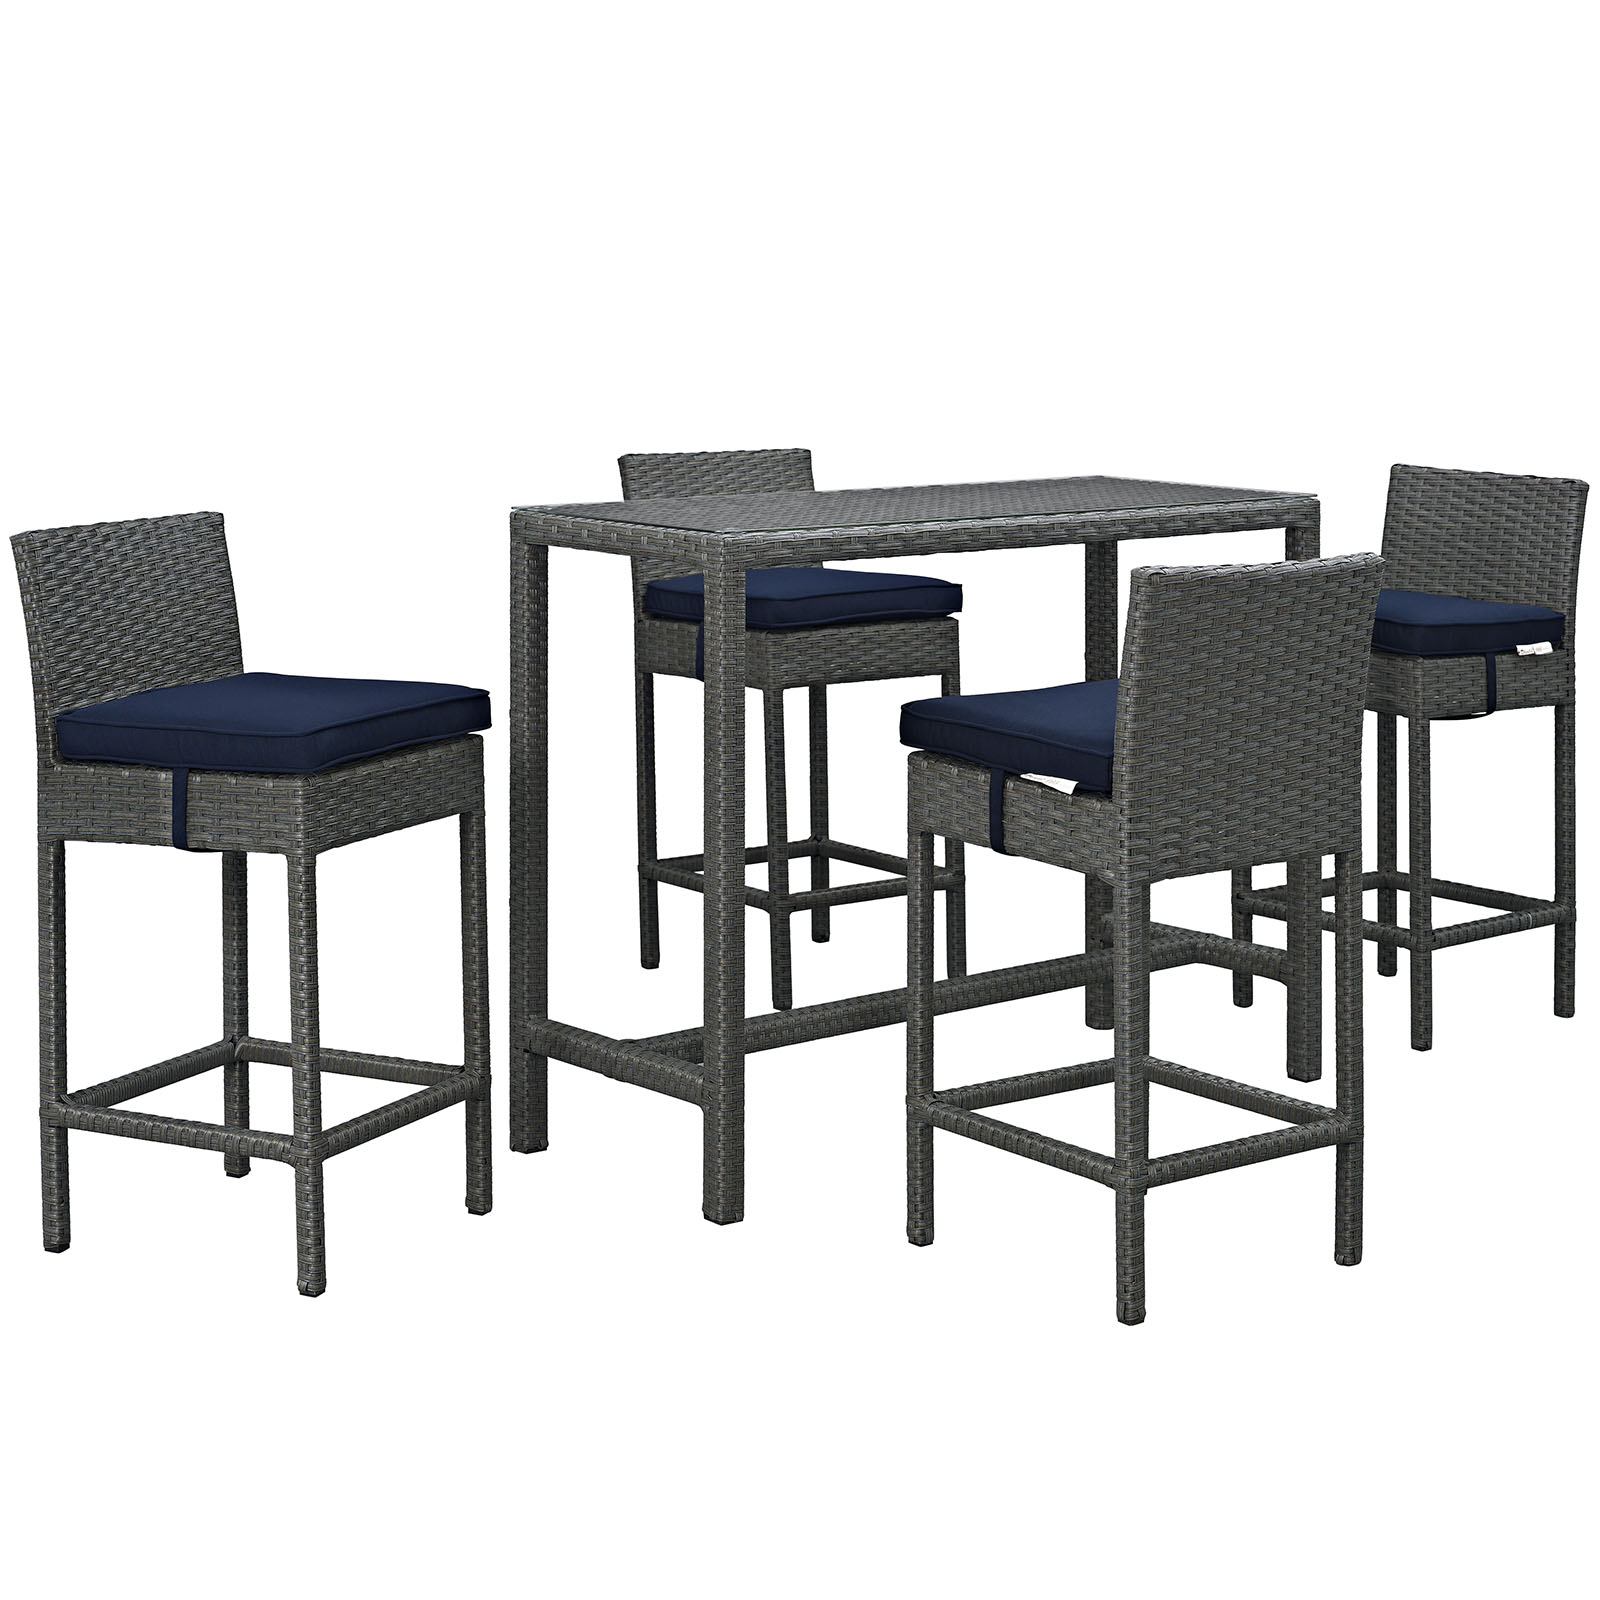 Modway Sojourn 5 Piece Bar Height Dining Set with Cushion